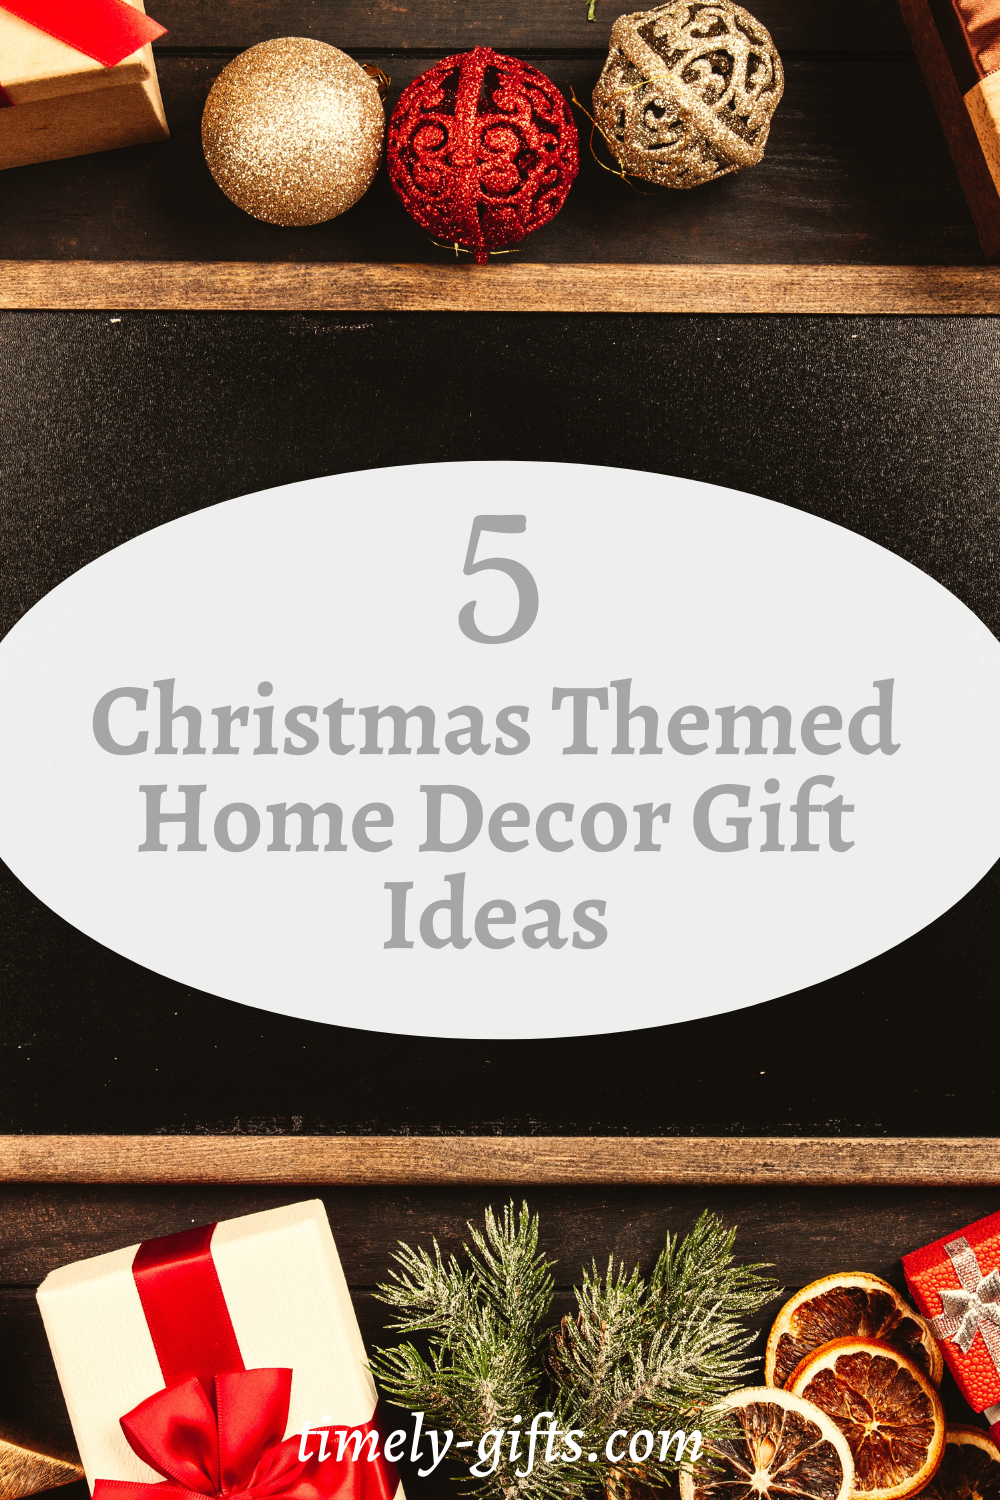 Check out these christmas home decor gift ideas! This article will have some great Christmas decor gift ideas that anyone is sure to love! These gift ideas are super cute and would look great in any house this holiday season. #christmas #christmasgifts #decorgifts #christmasdecor #homedeocr #holidaydecor #holidaygifts #cutegifts #homegifts #housewarming #indoordeocr #greatgifts